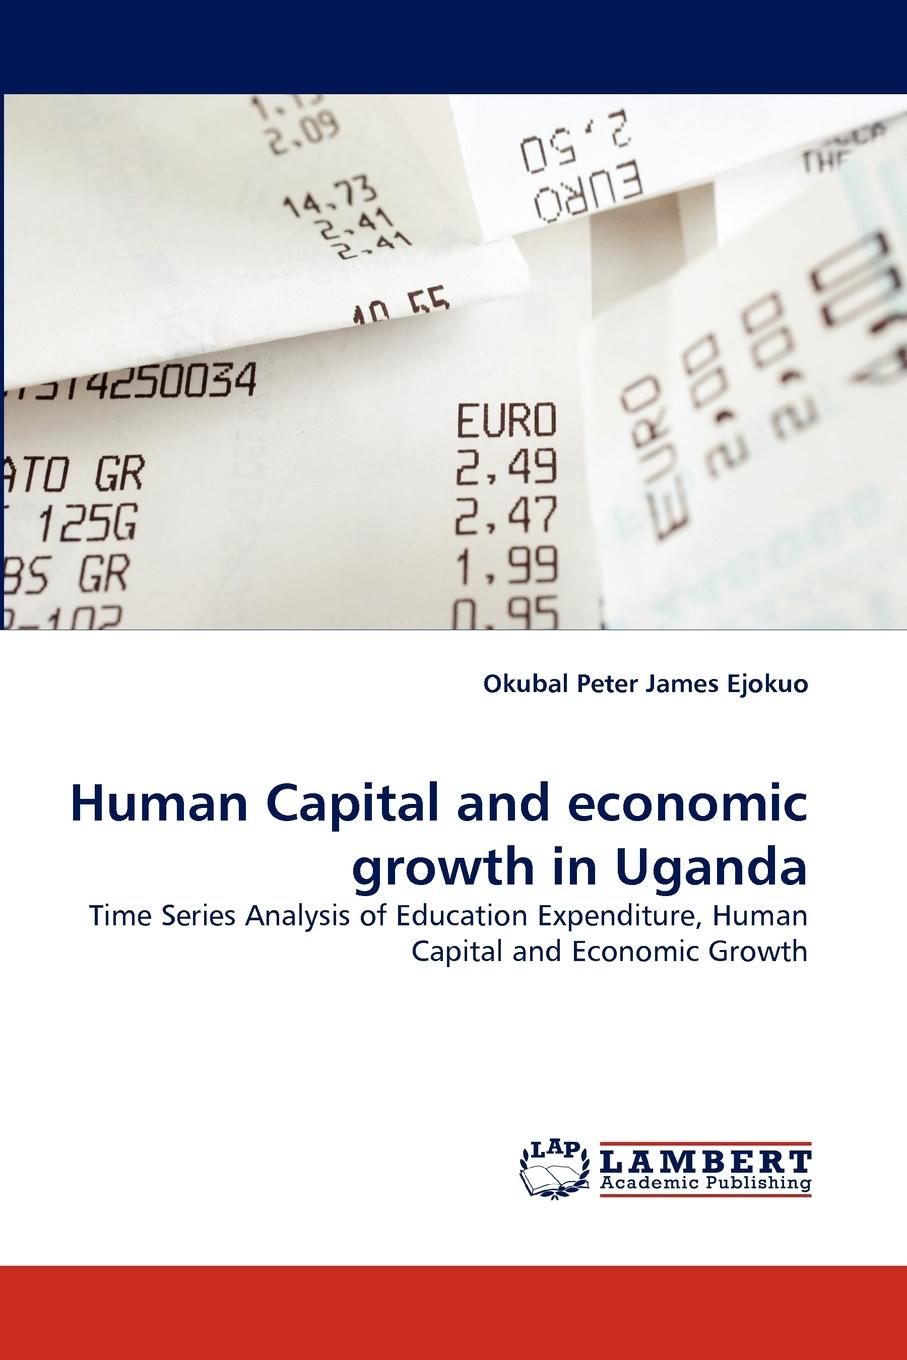 Okubal Peter James Ejokuo Human Capital and Economic Growth in Uganda mary goretty oyella basic education poverty reduction and the realisation of equality in northern uganda